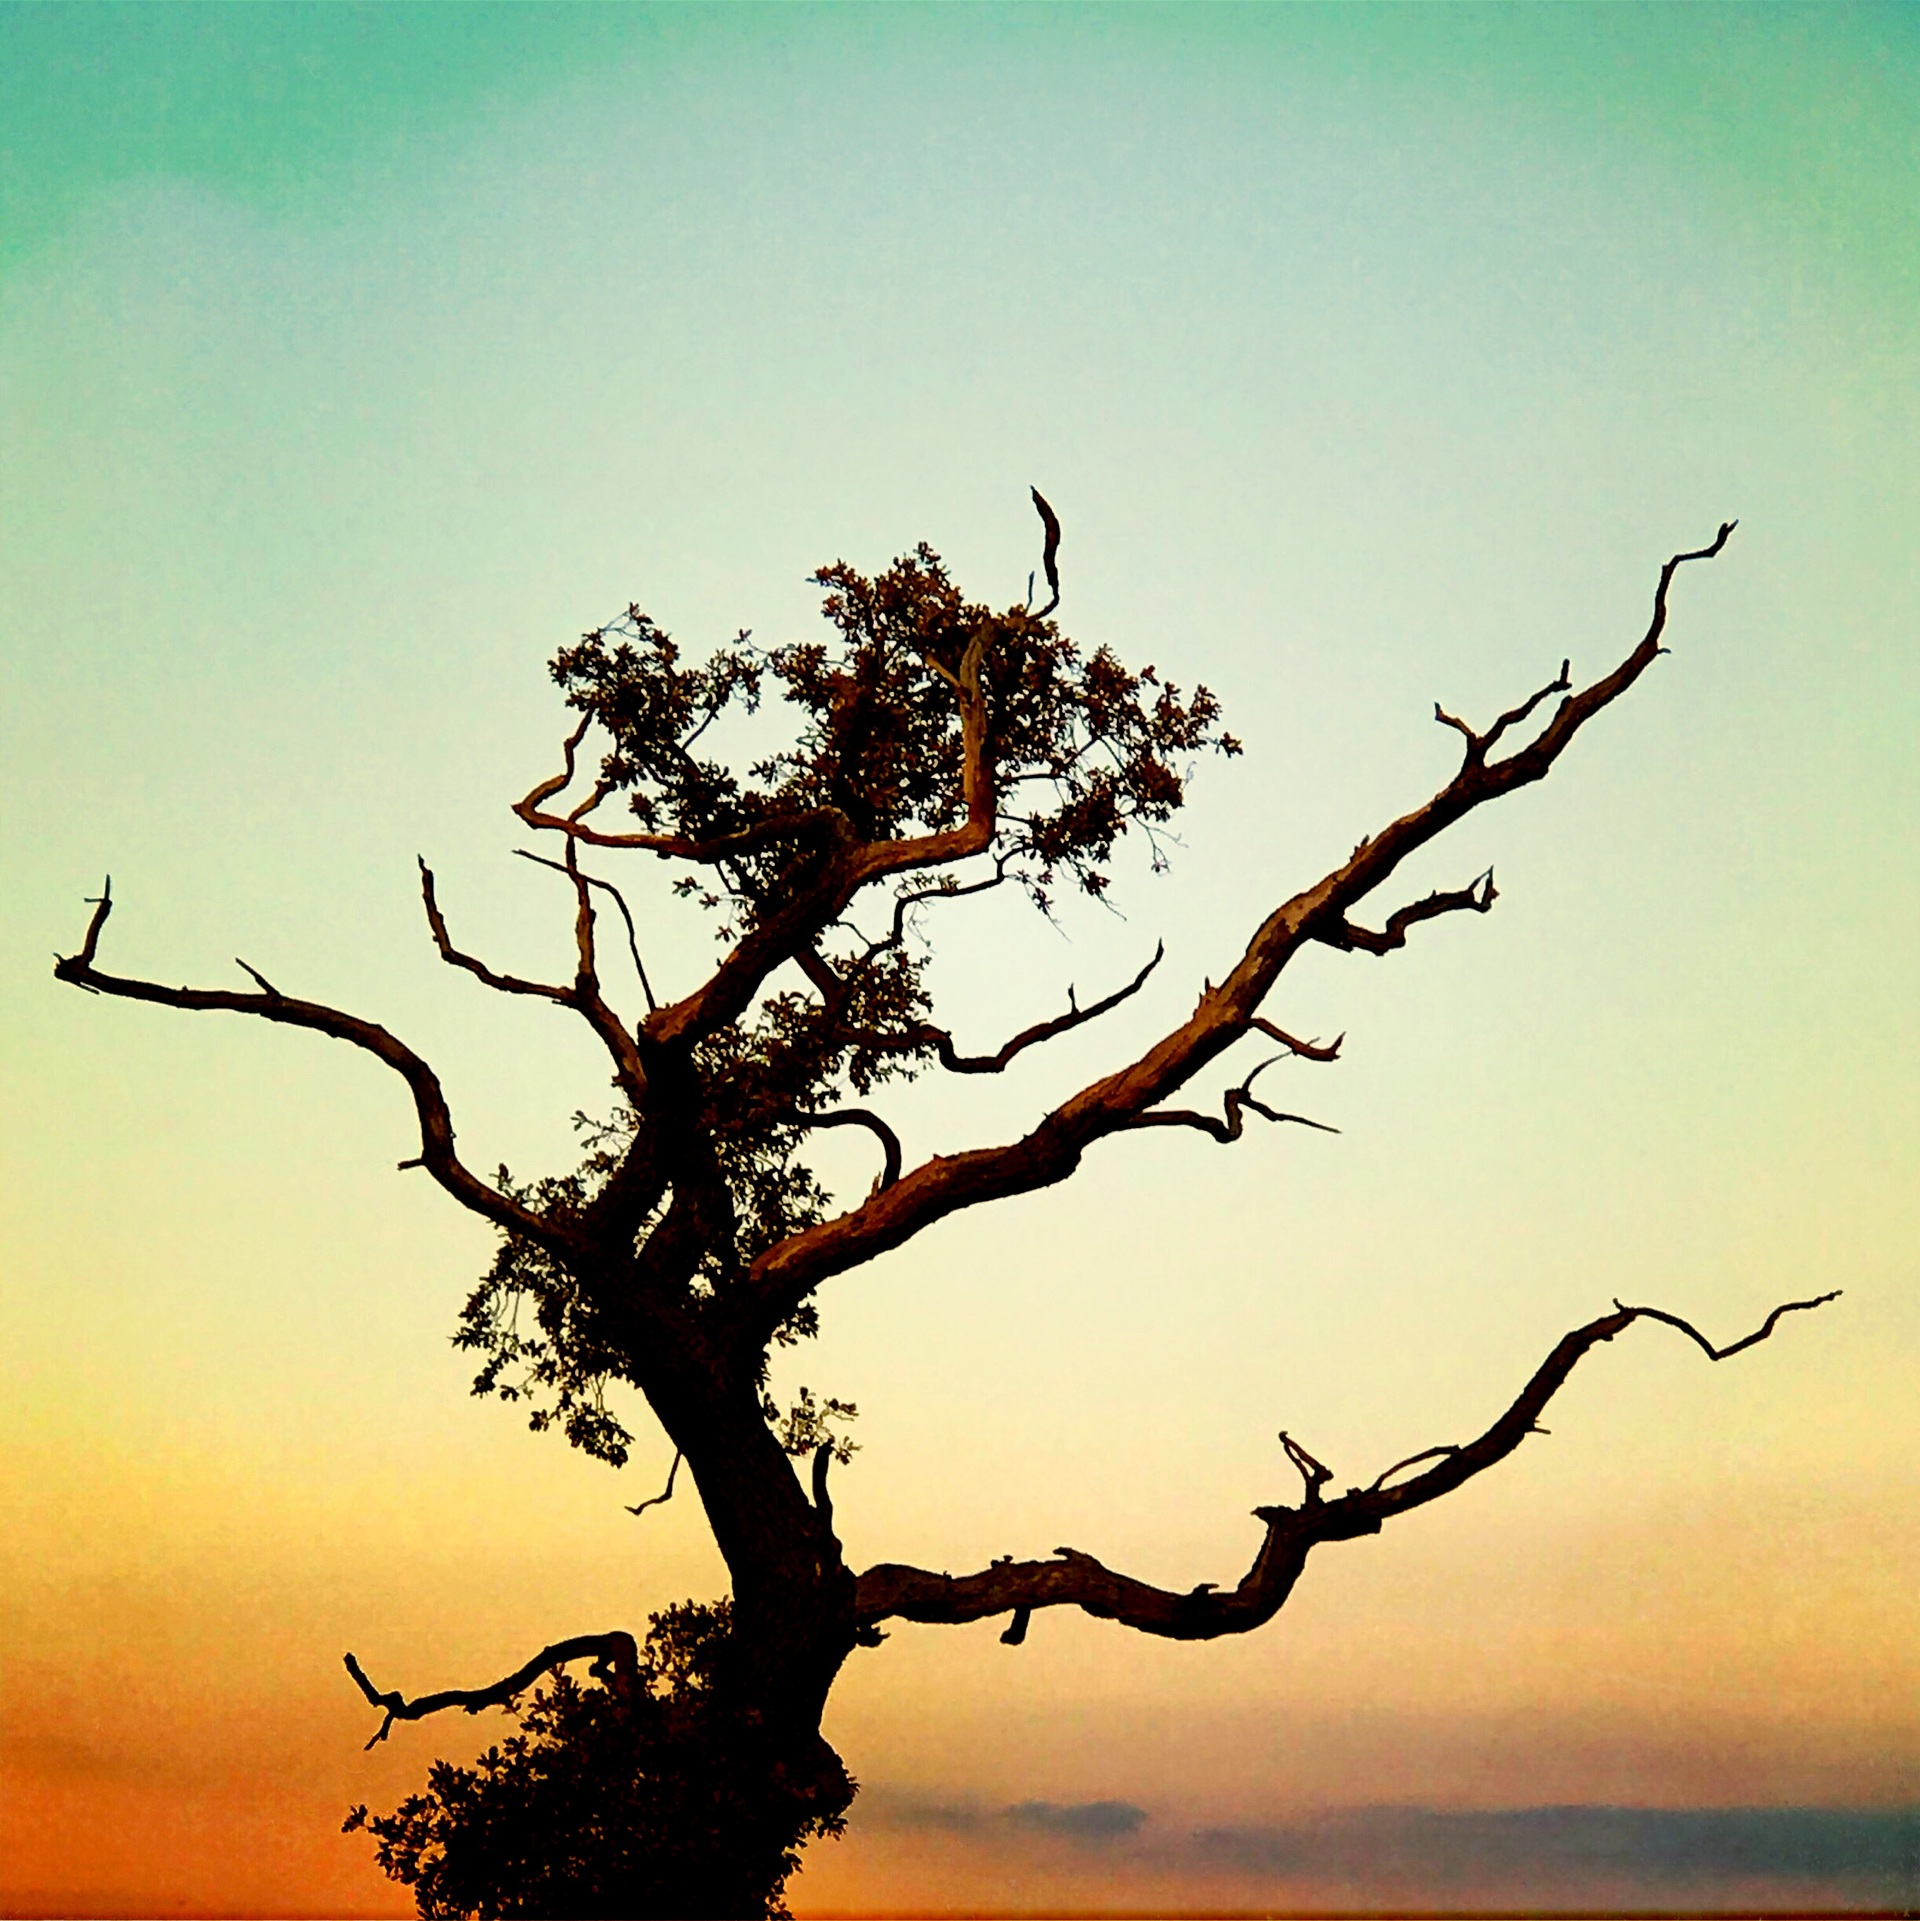 Tree, No Person, Sunset, Nature, Dawn